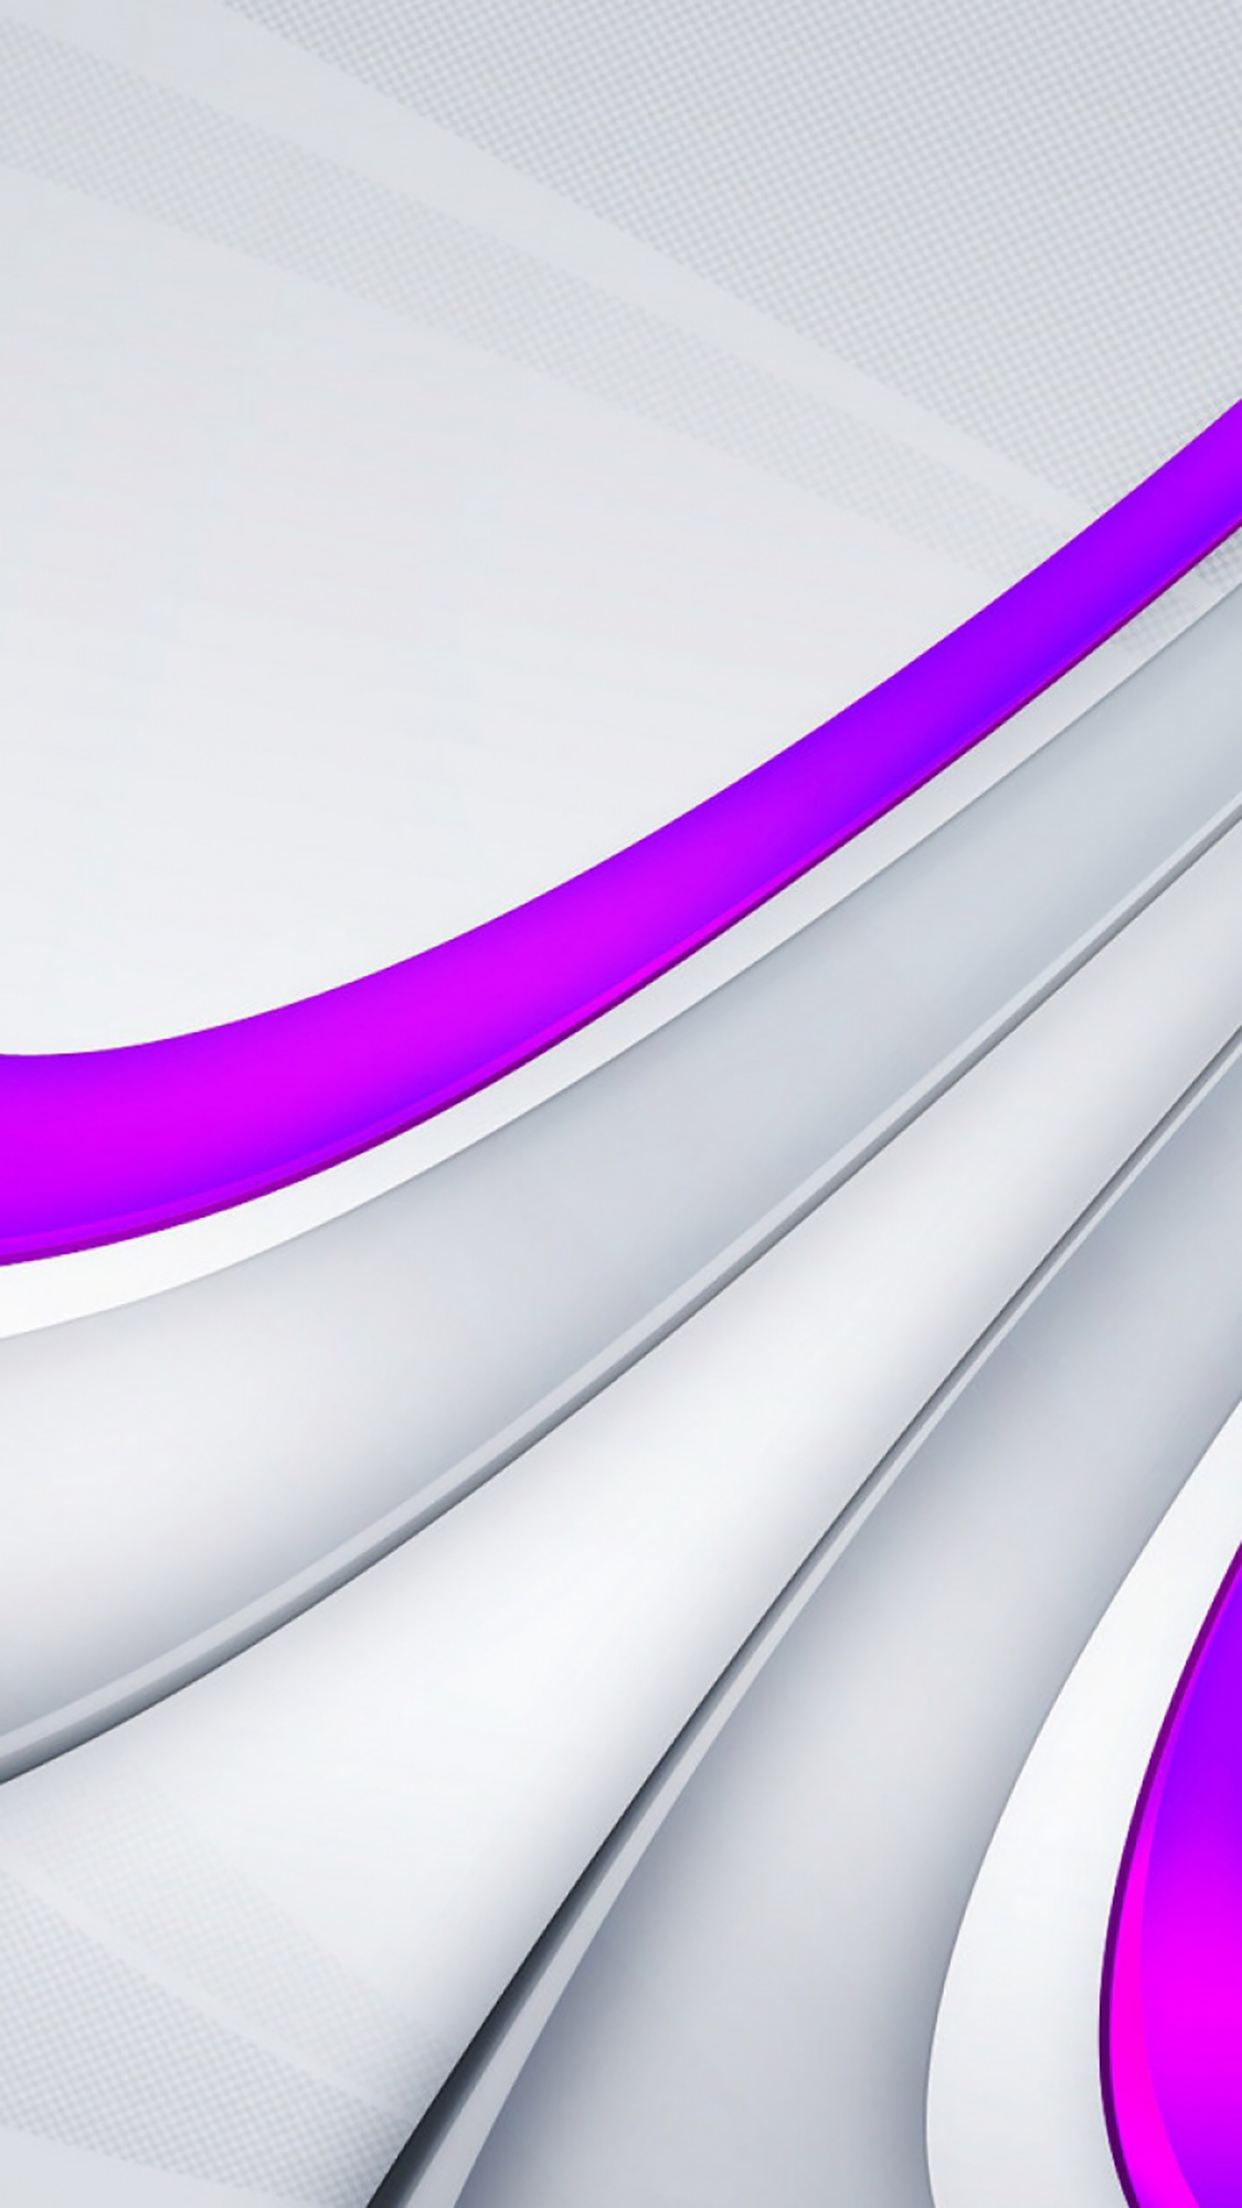 Painting White Violet 3Wallpapers iPhone Parallax Painting : White Violet